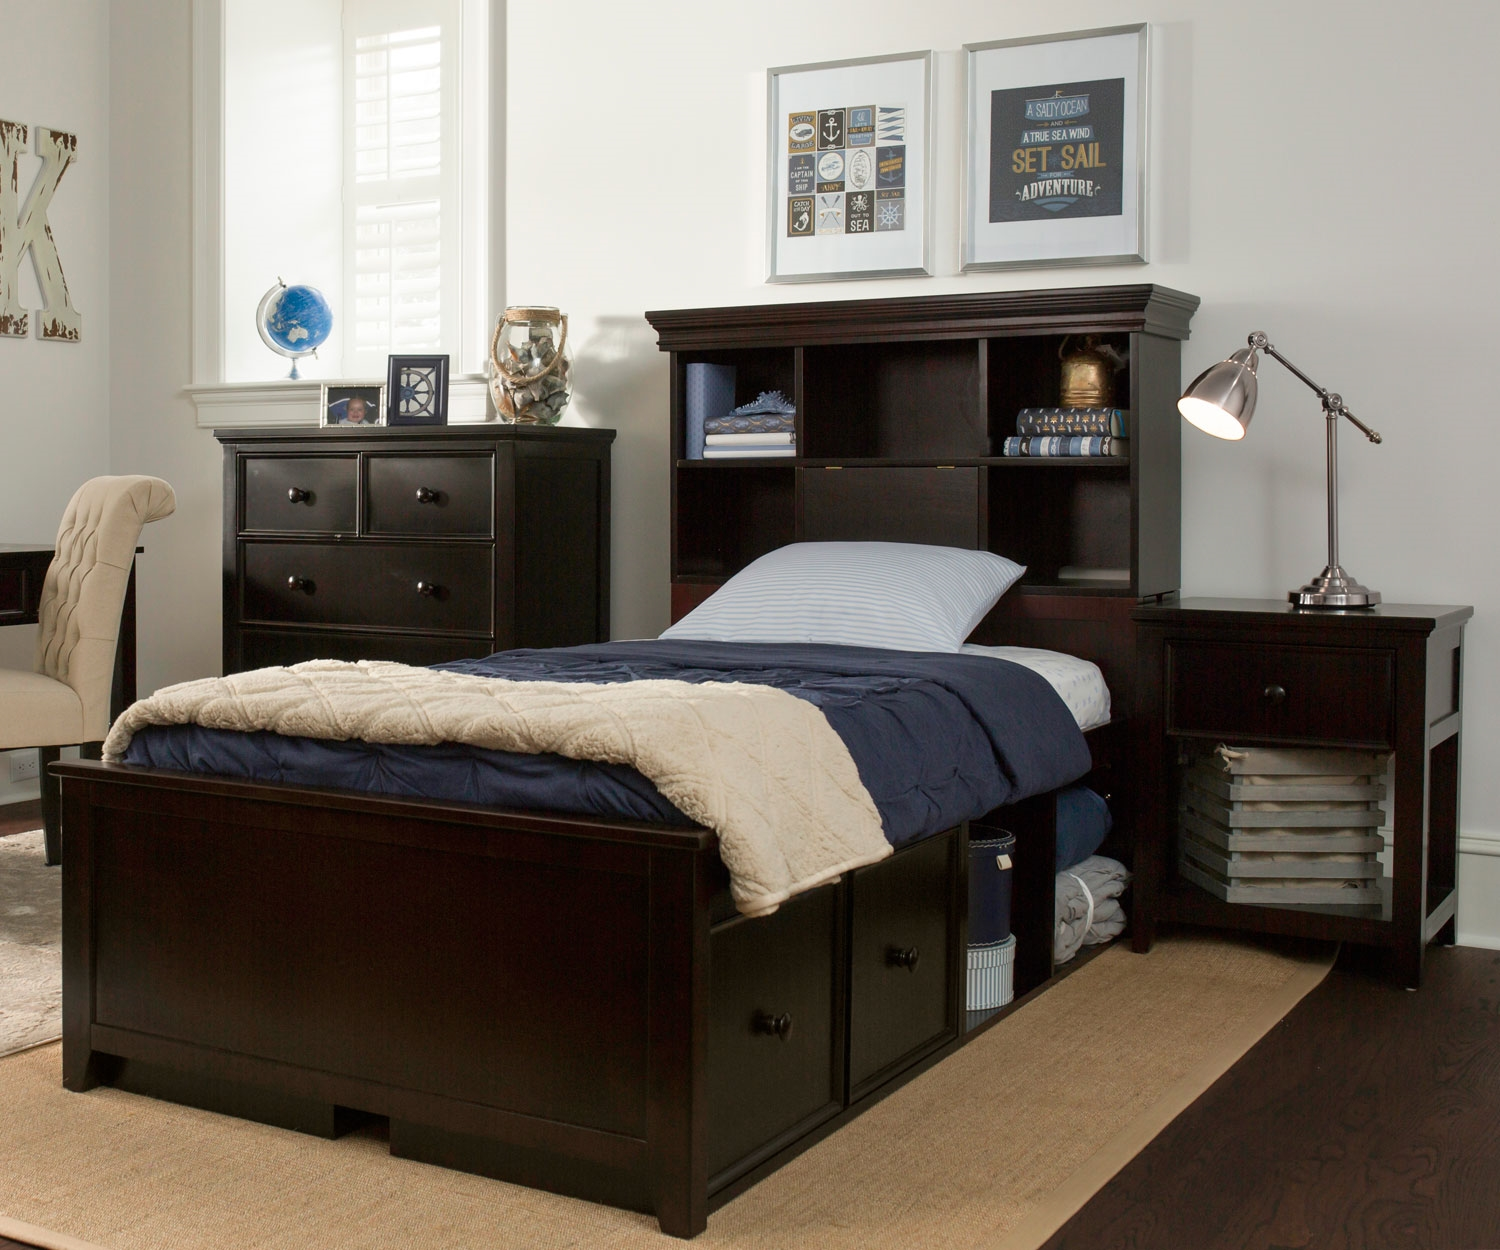 Image of: Twin Bed and Desk Set